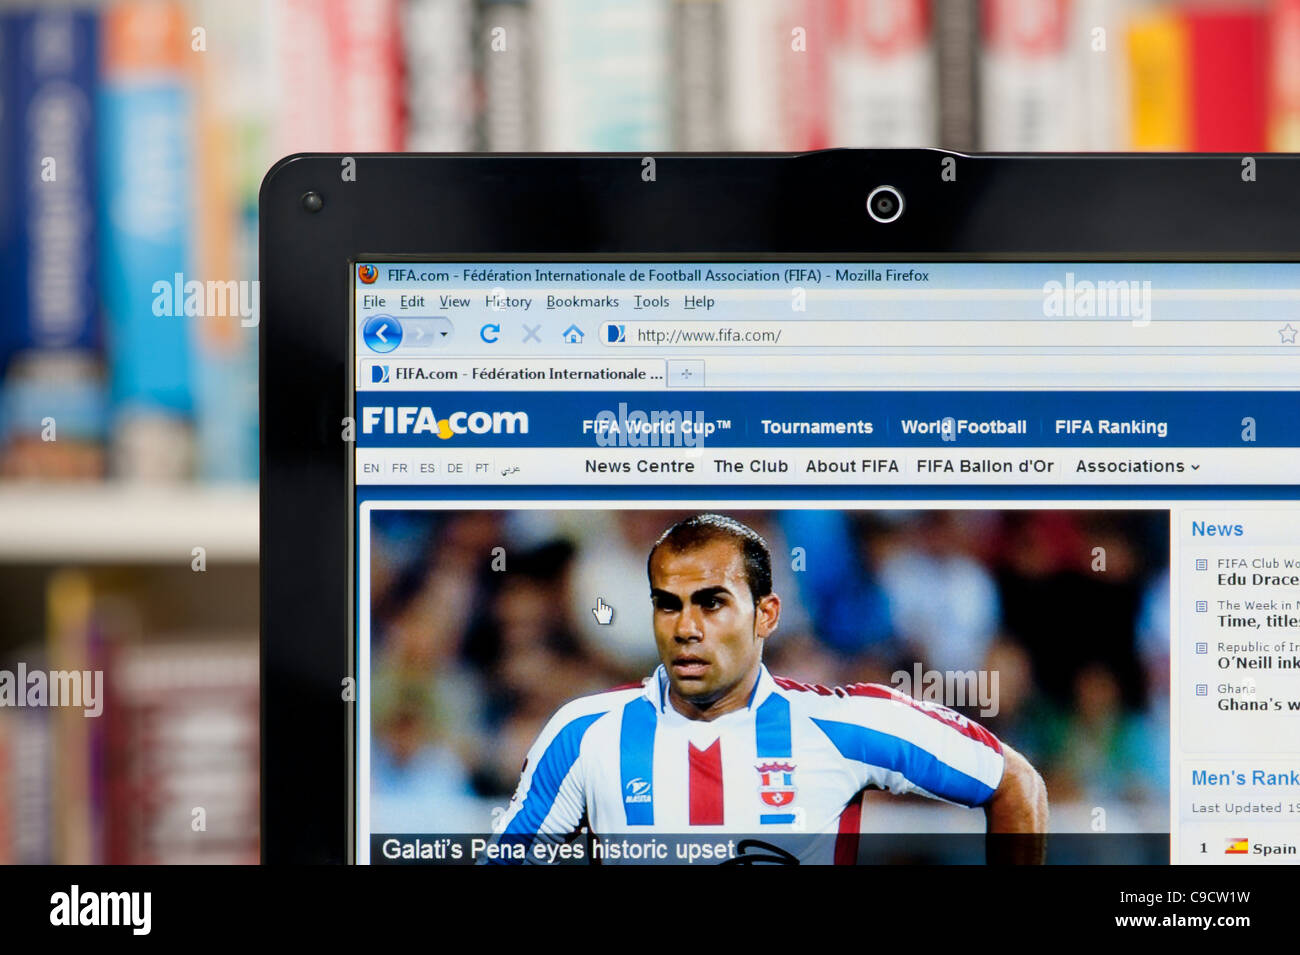 The FIFA website shot against a bookcase background (Editorial use only: print, TV, e-book and editorial website). - Stock Image